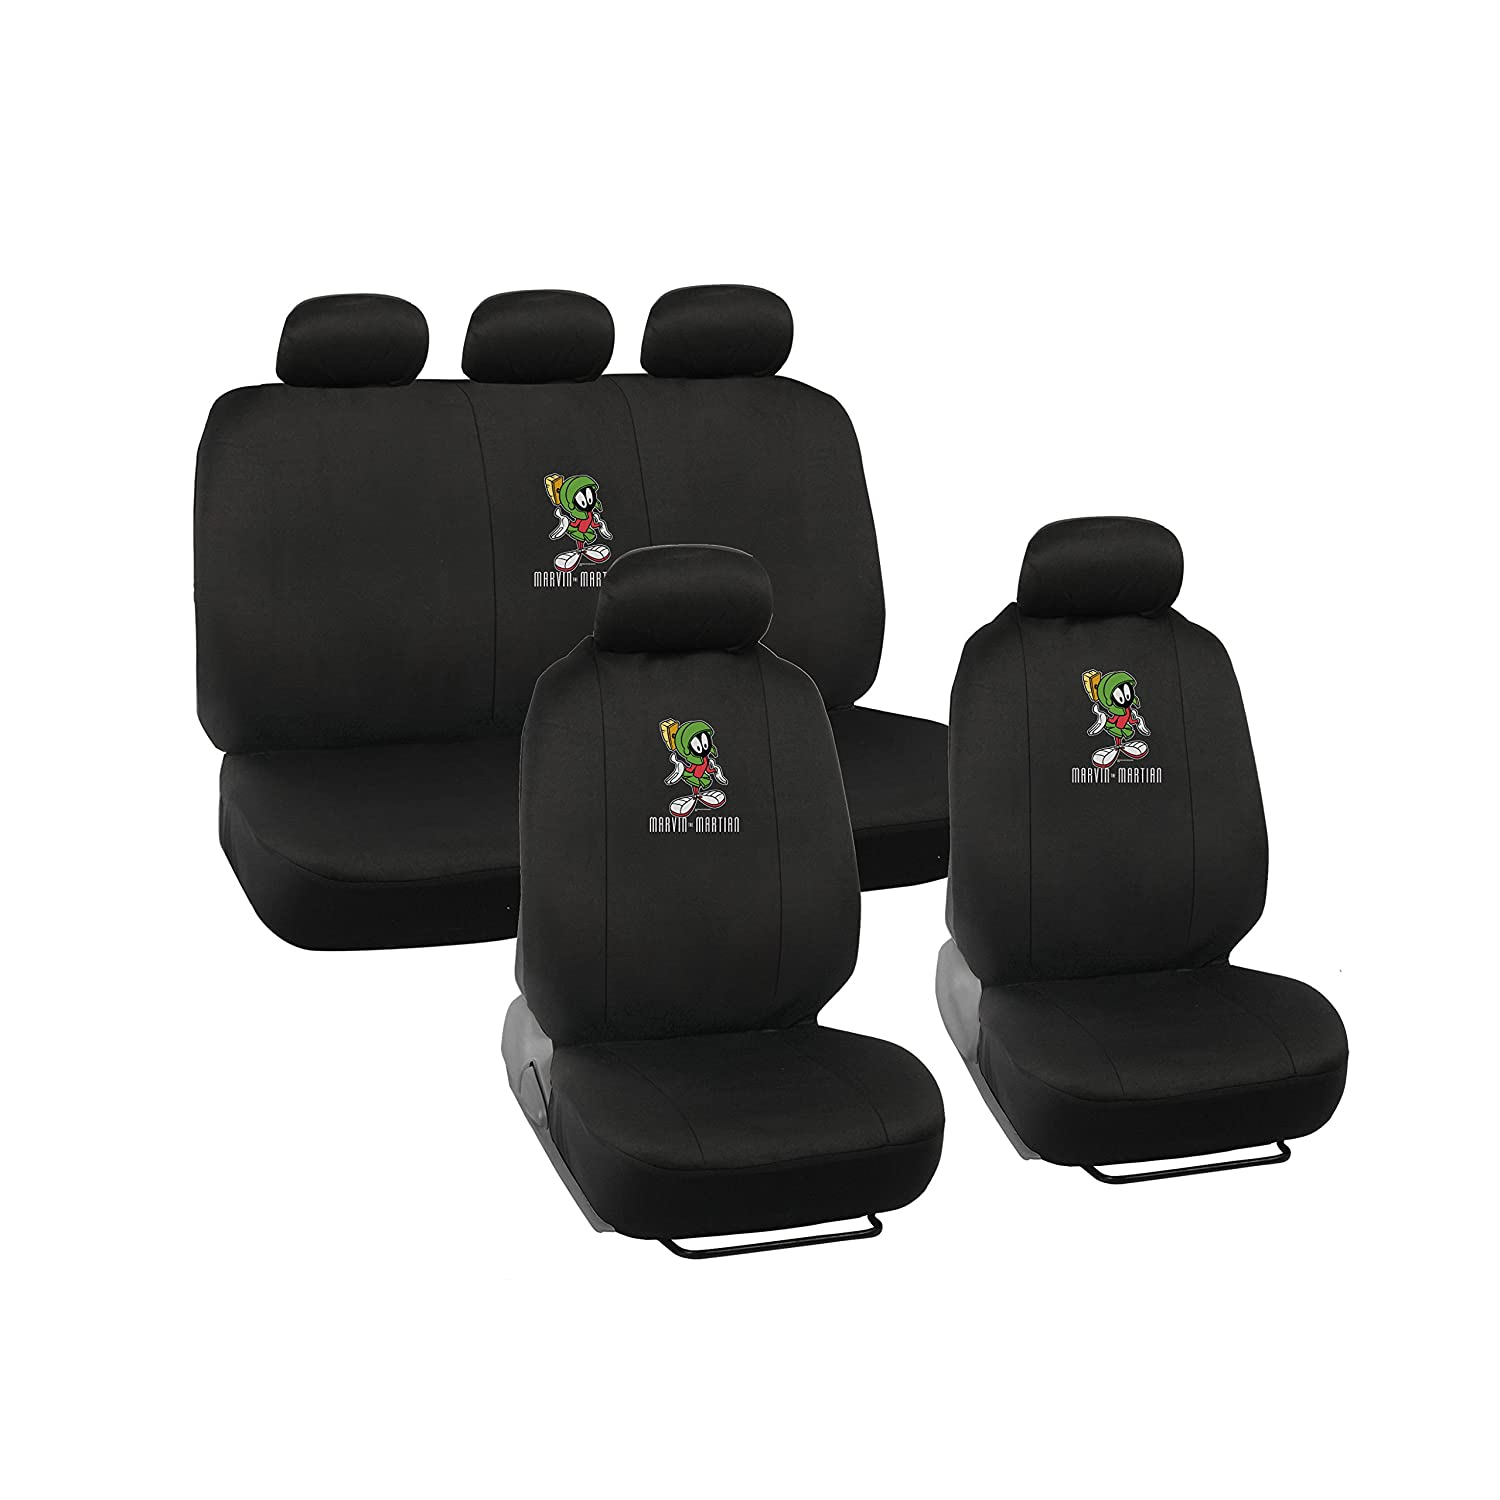 Amazon.com Warner Brothers Marvin the Martian Seat Covers for Car - Looney Tunes Auto Accessories Universal Fit Automotive  sc 1 st  Amazon.com & Amazon.com: Warner Brothers Marvin the Martian Seat Covers for Car ... markmcfarlin.com